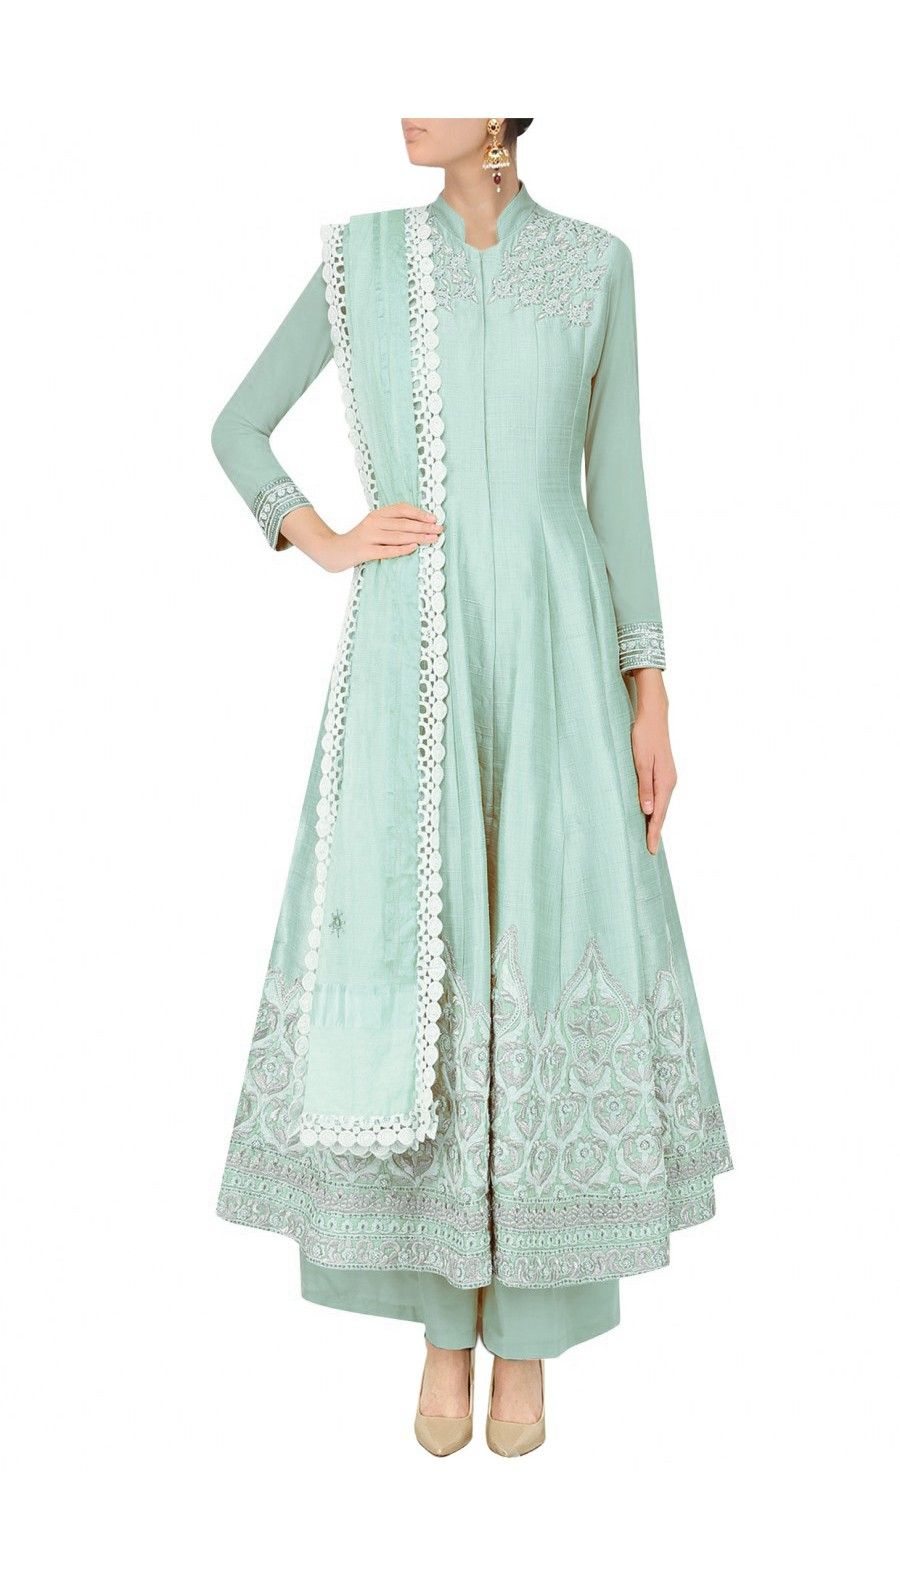 light blue traditional indian dress